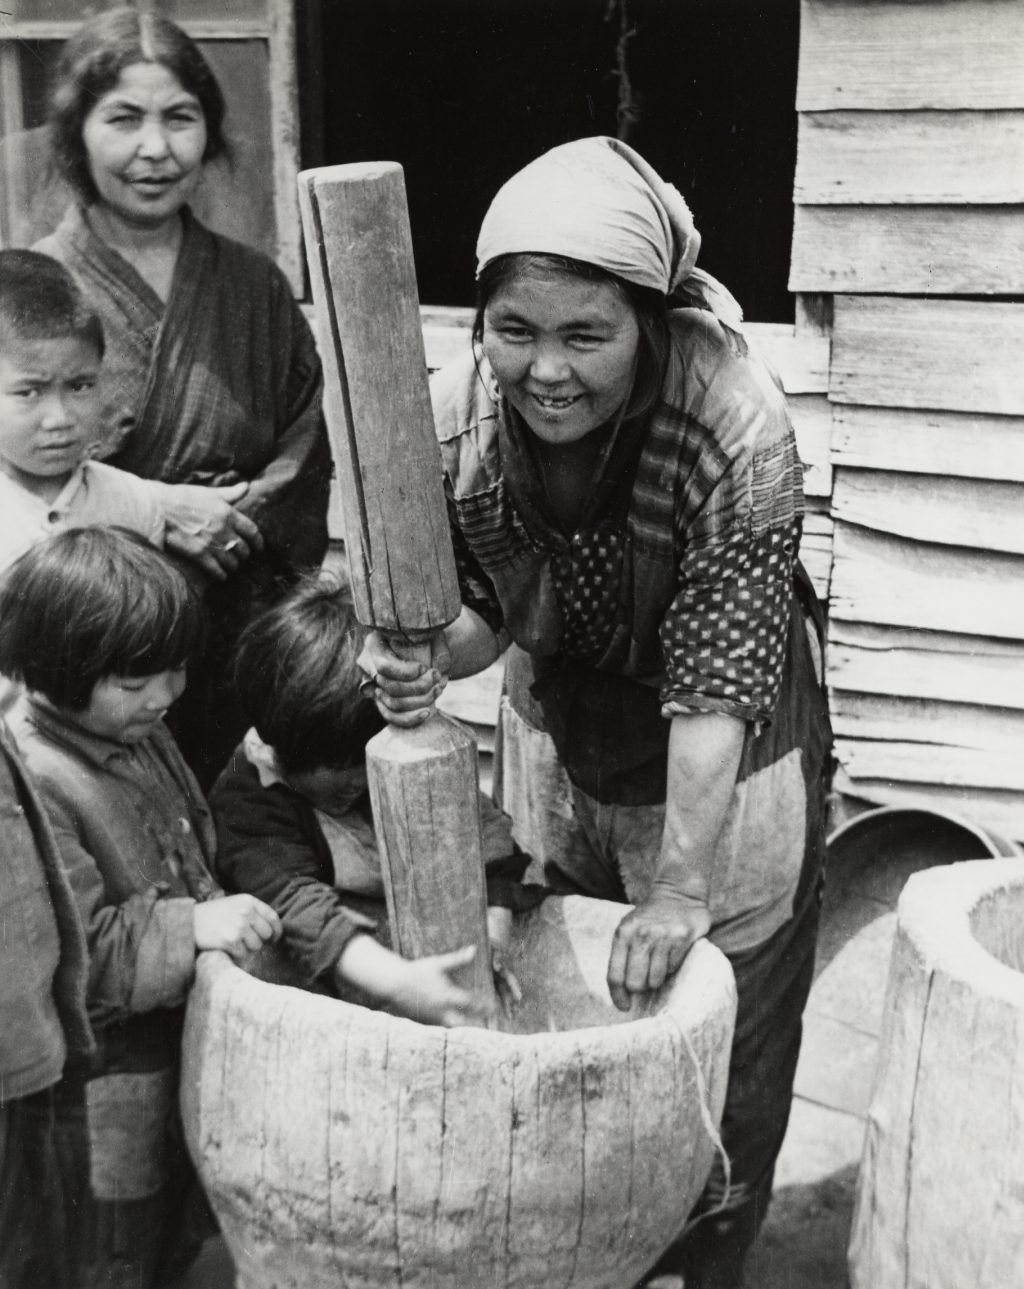 Ainu rice mortar, made from a hollowed-out sugi (cryptomeria) log, 1948 by John W. Bennett